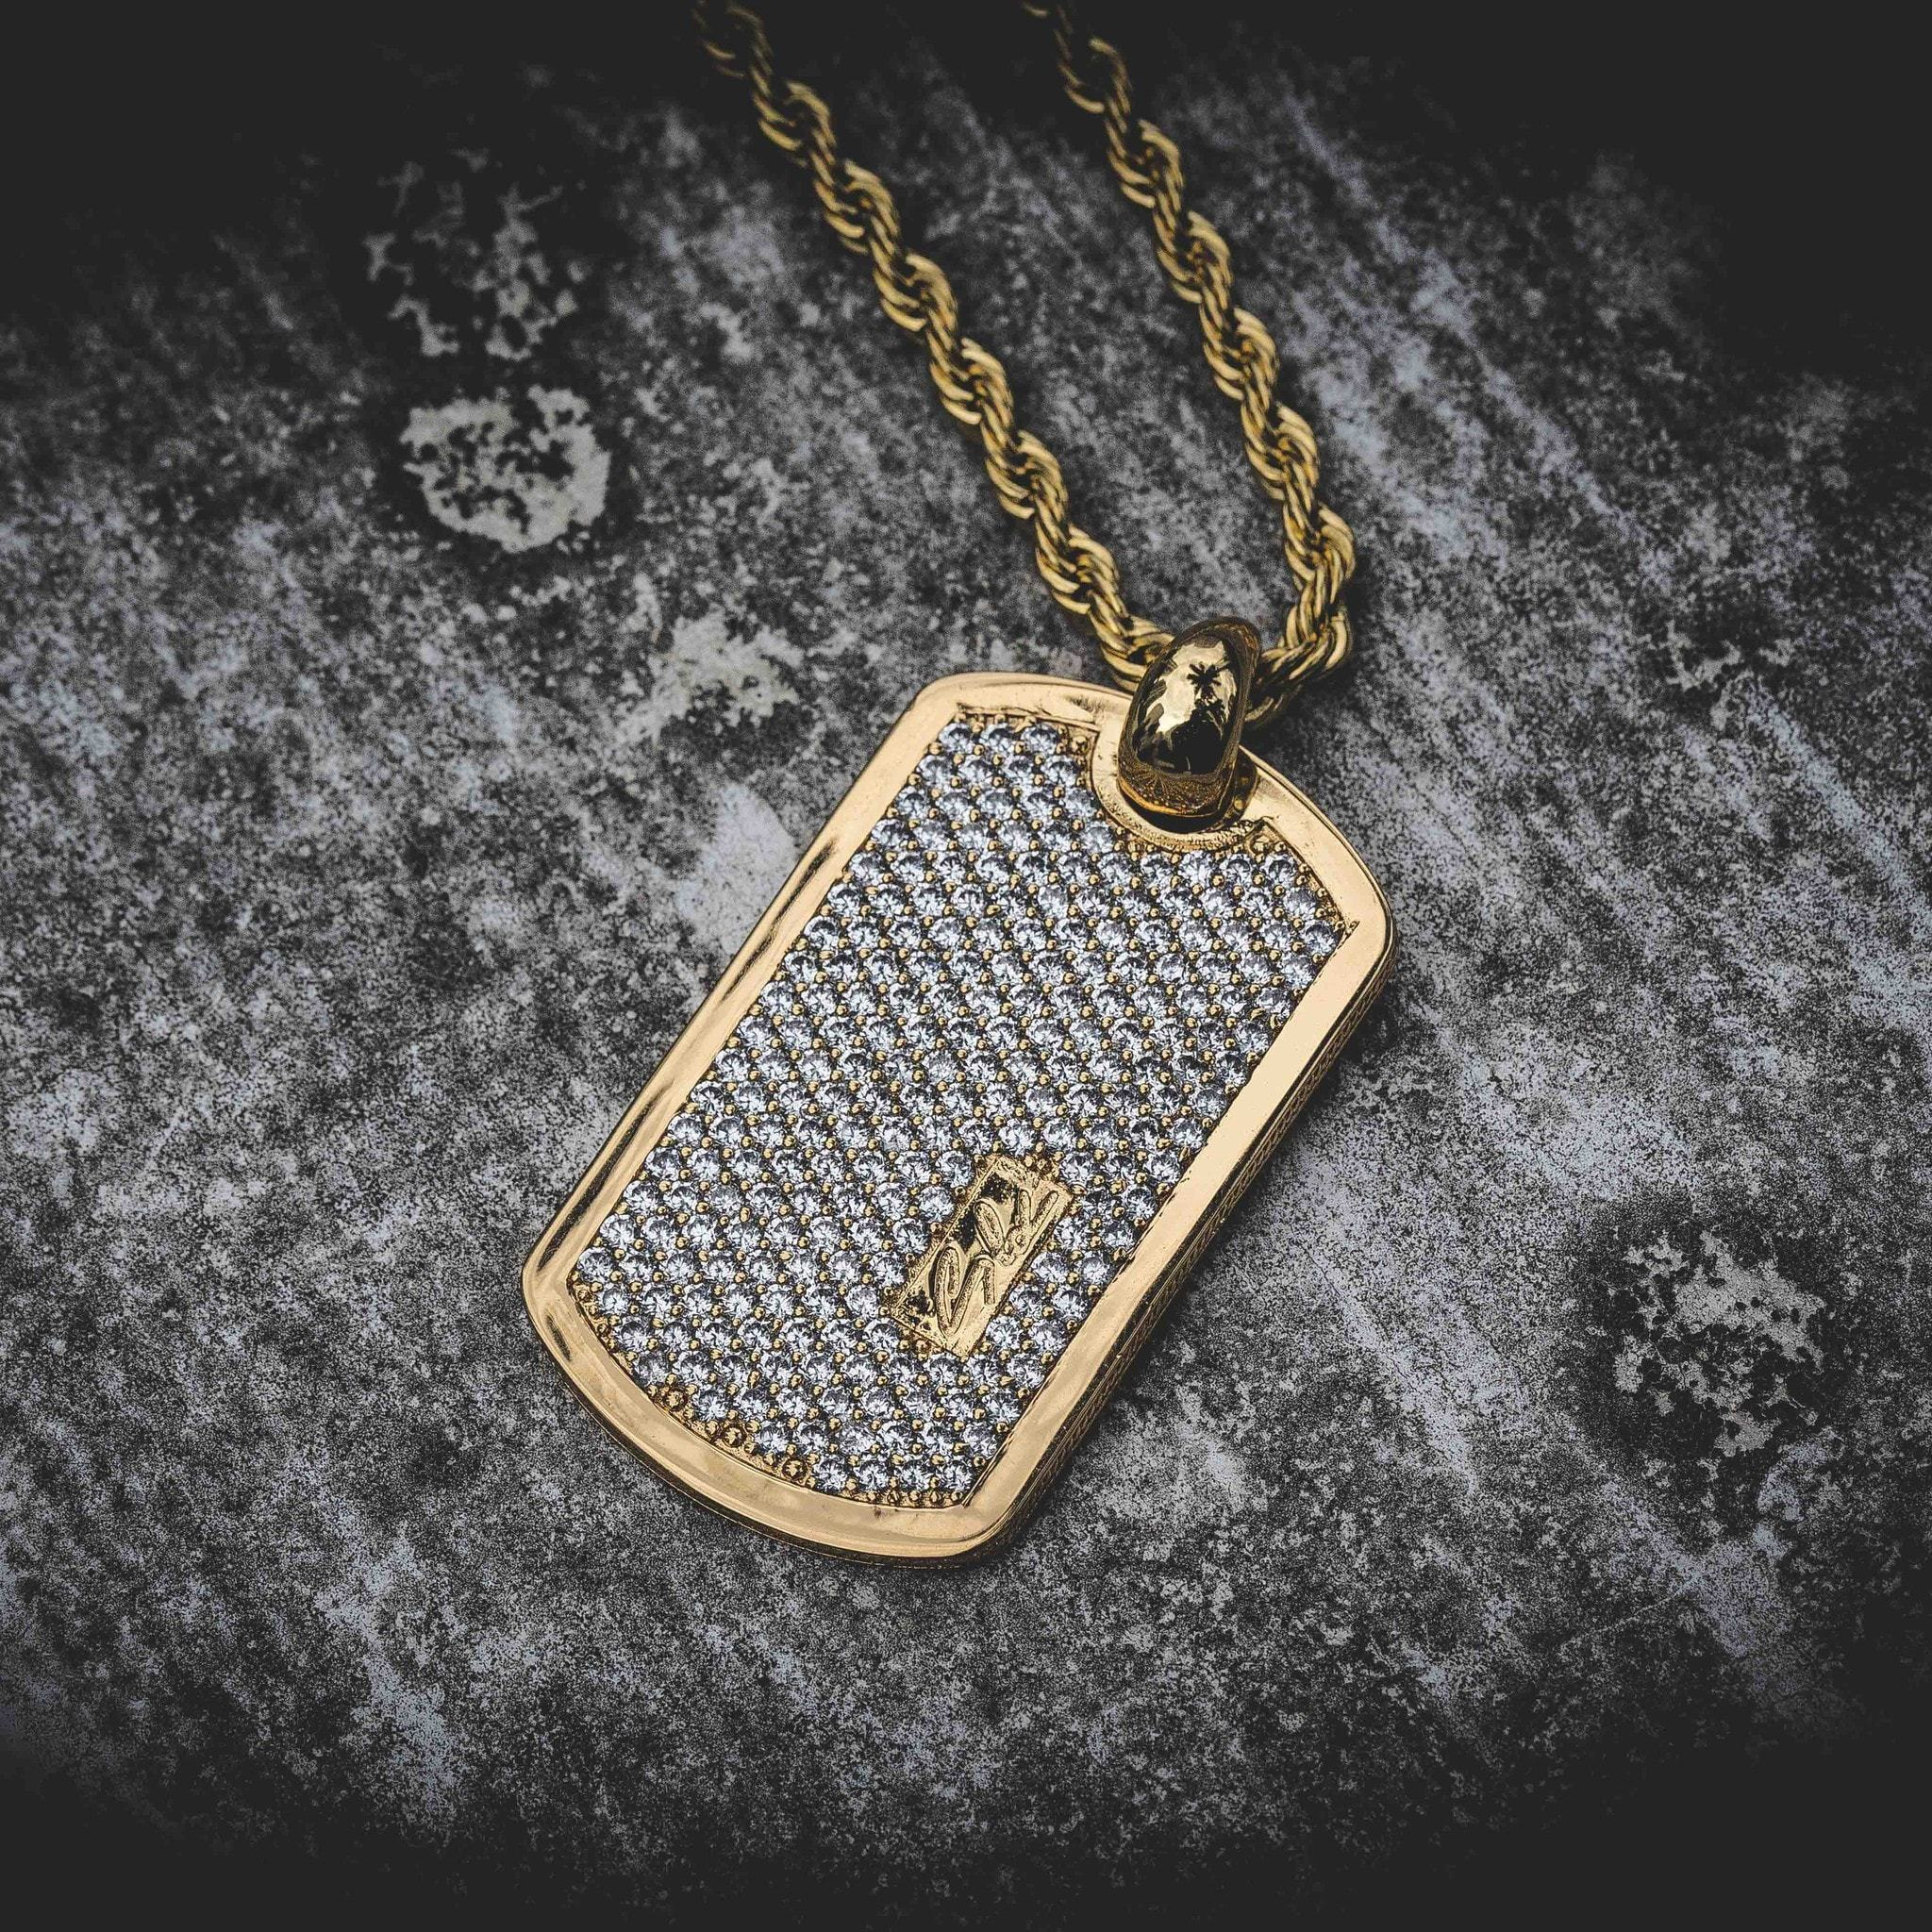 Gld dog tag pendant the gld shop gld iced dog tag pendant the gld shop aloadofball